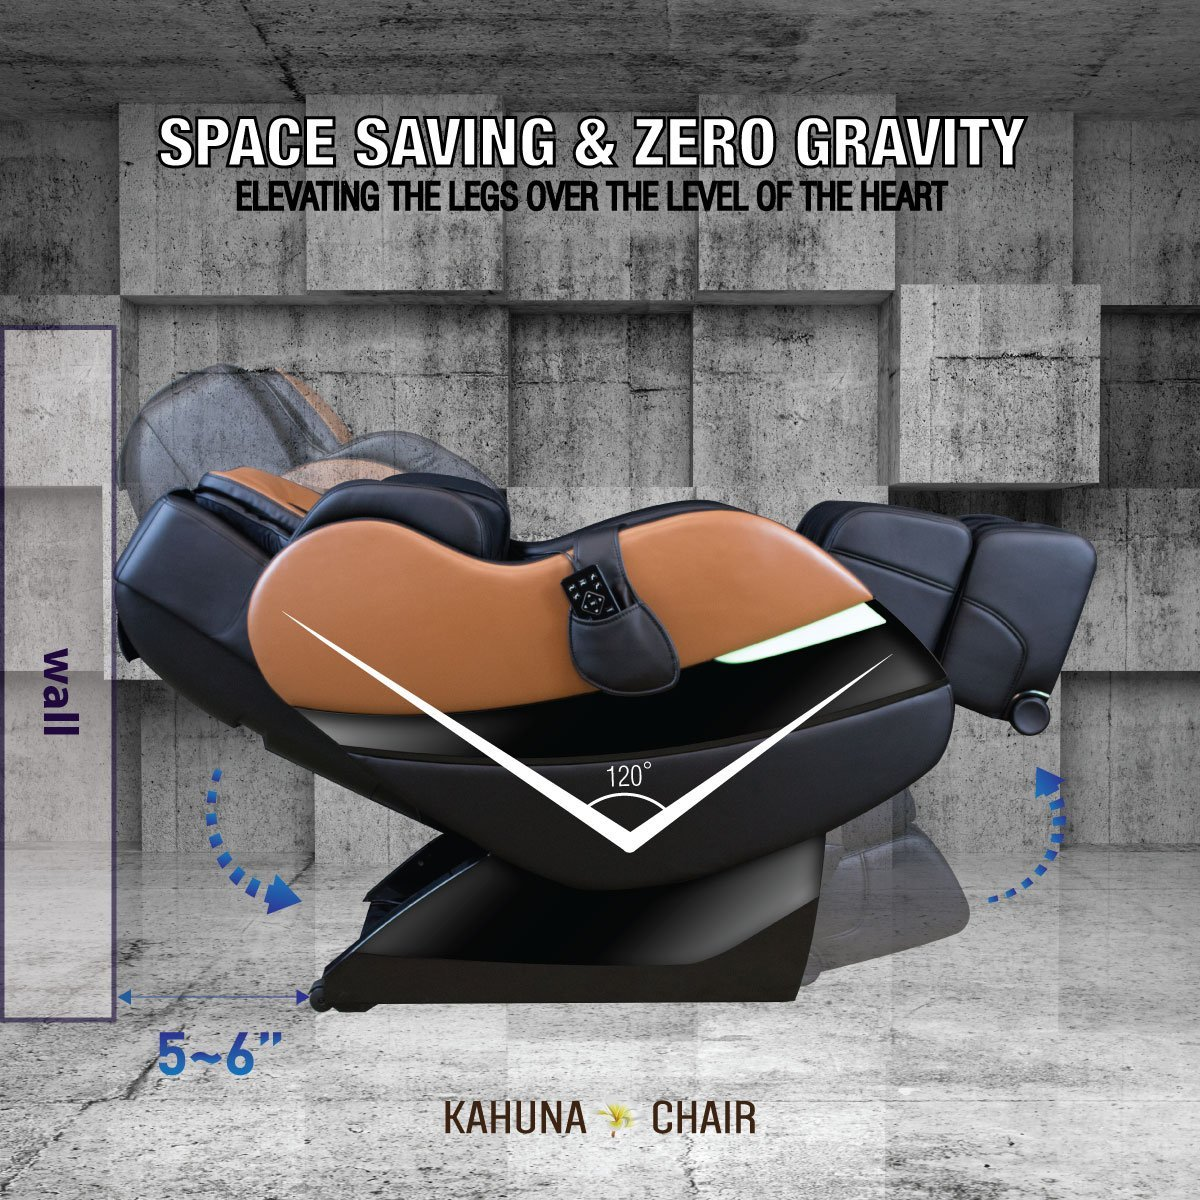 Kahuna SM7300 Space Saving & Zero Gravity - Kahuna Massage Chair Reviews